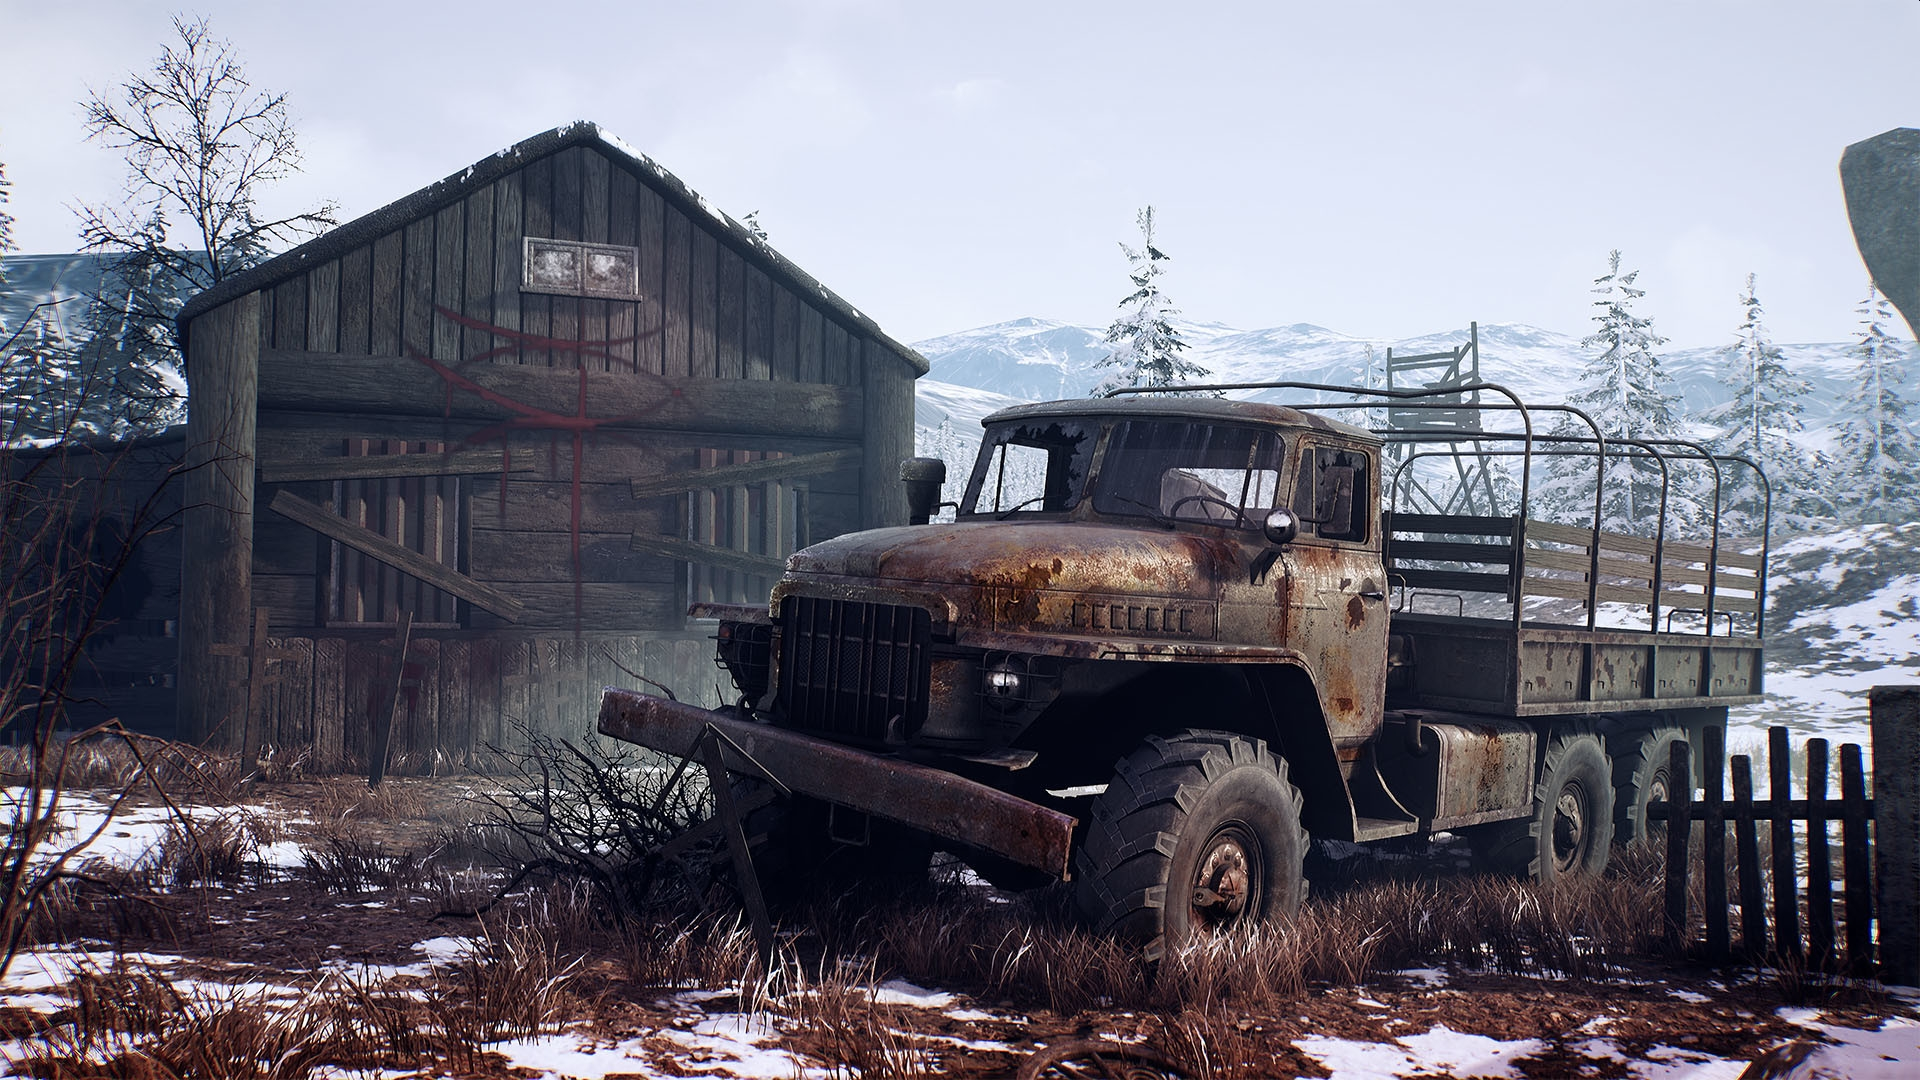 Drago Entertainment's Post-Apocalyptic Survival Horror Red Frost Launches In 2021